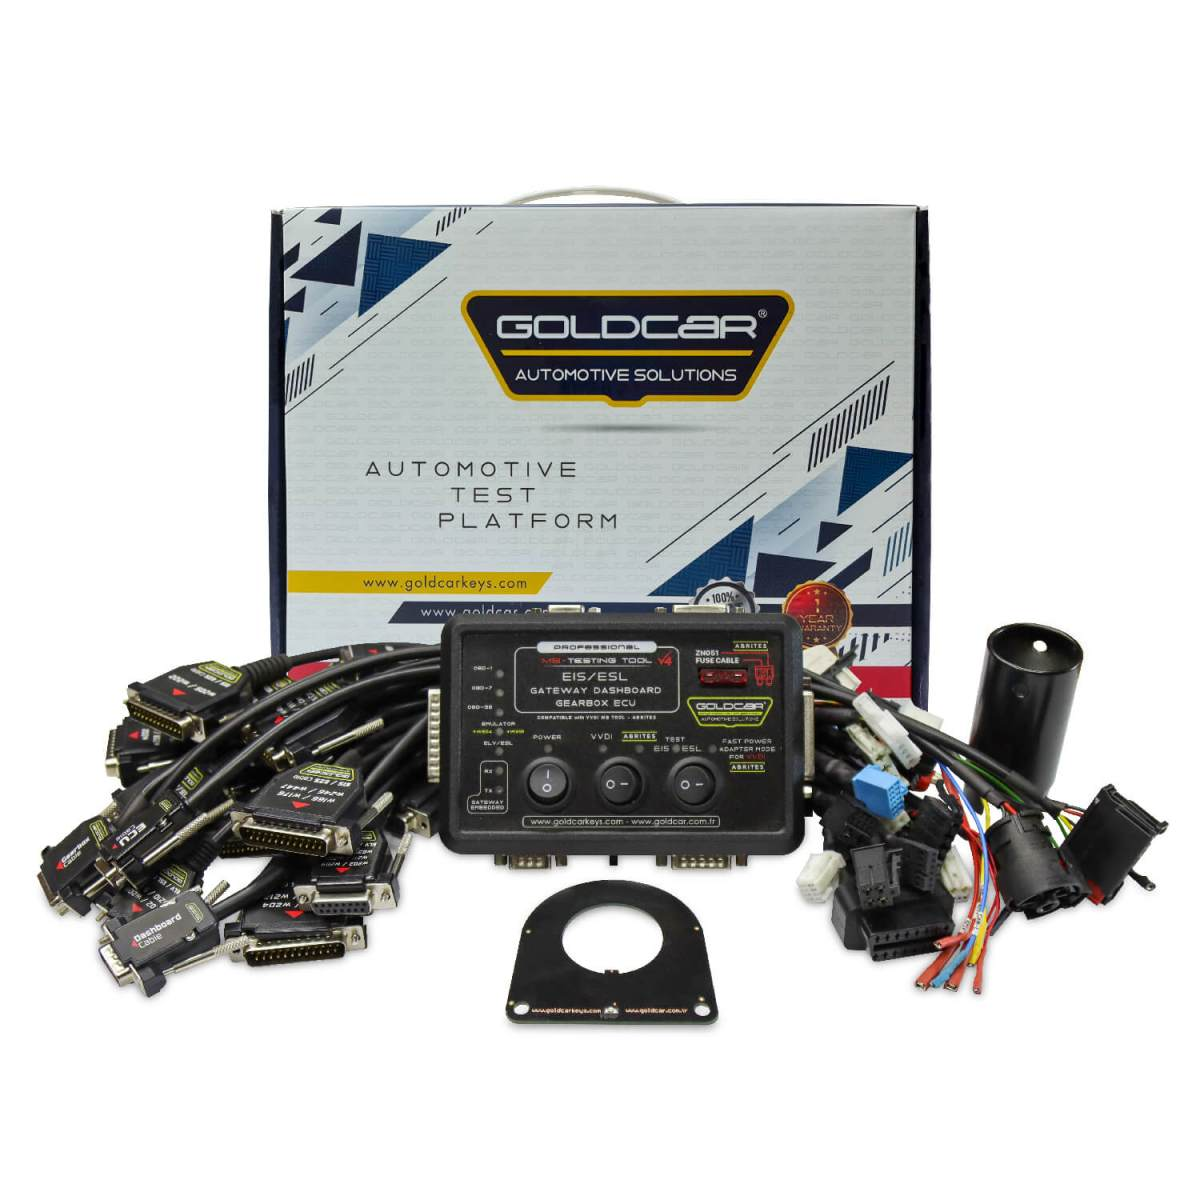 vvdi-goldcar-mb-tool-product-with-cables